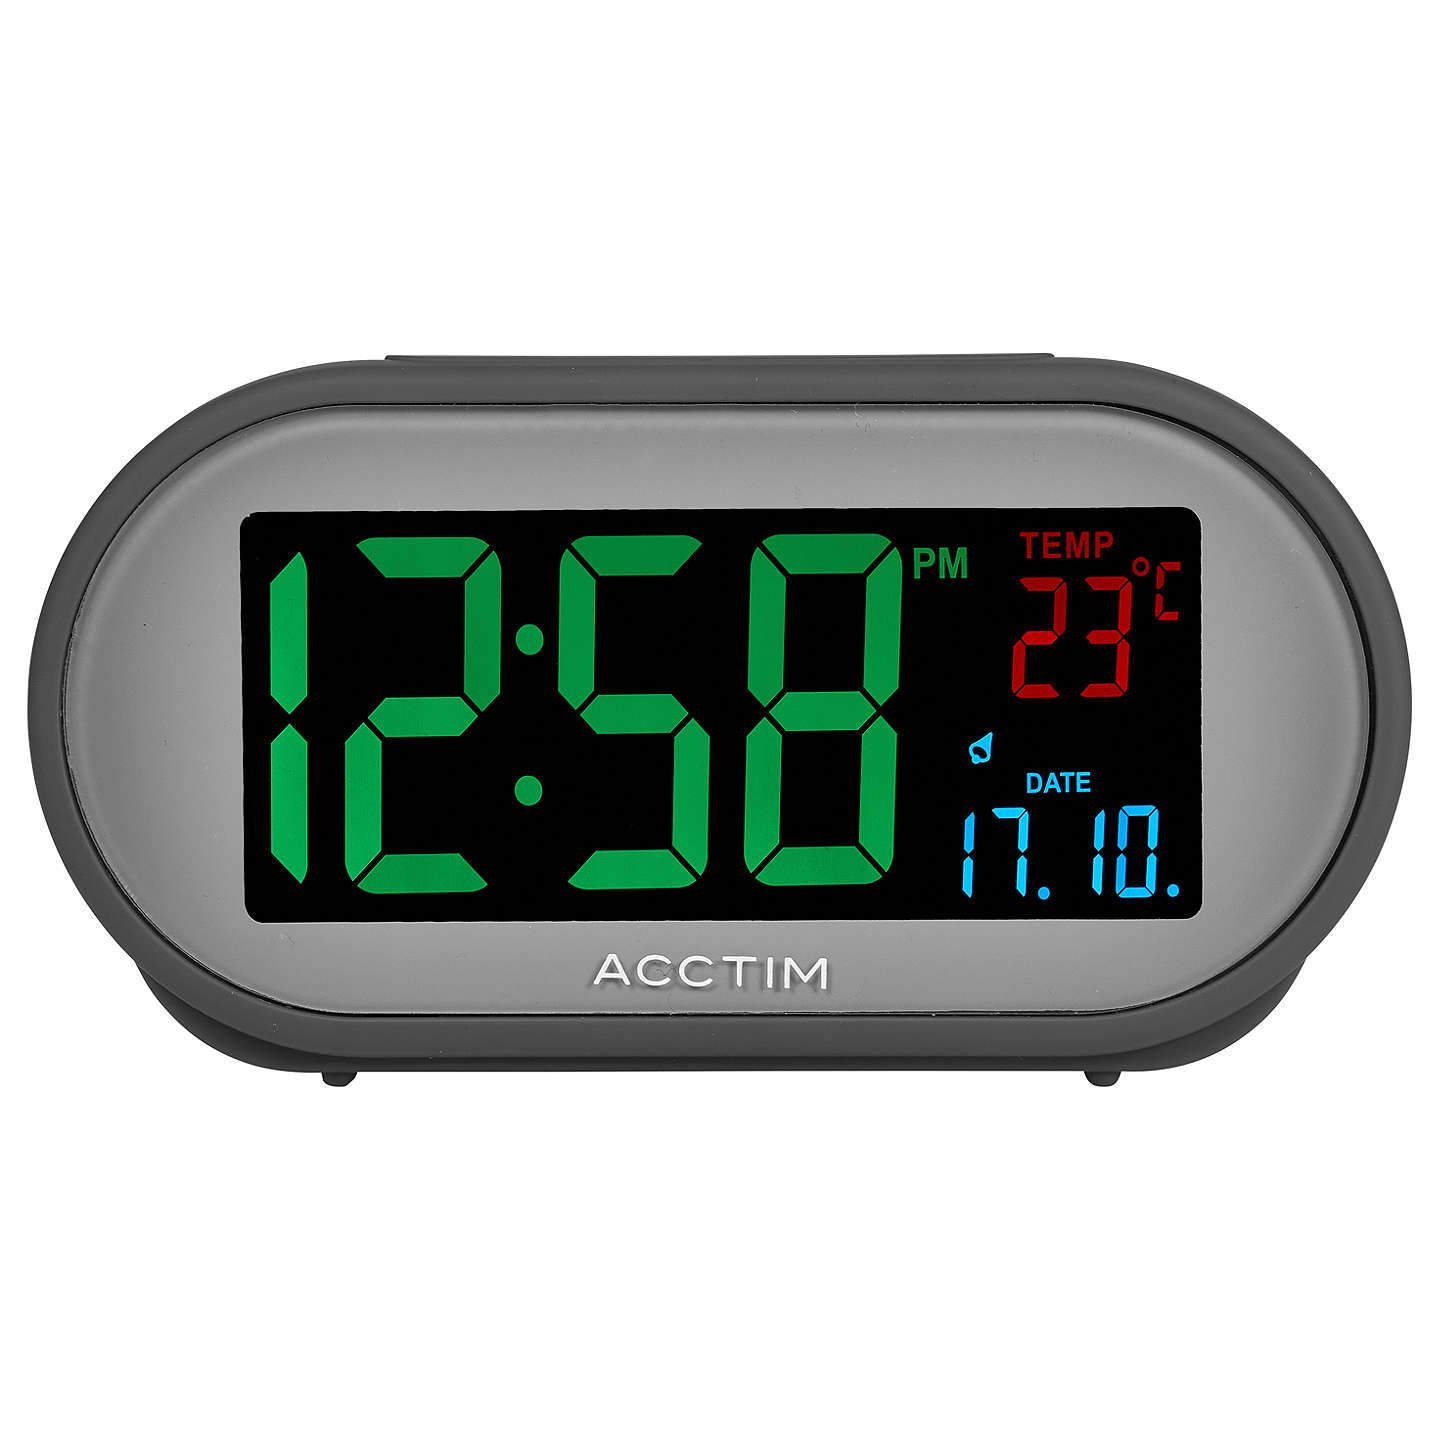 BuyAcctim Grey Smart Connector USB LCD Alarm Clock Online At Johnlewis